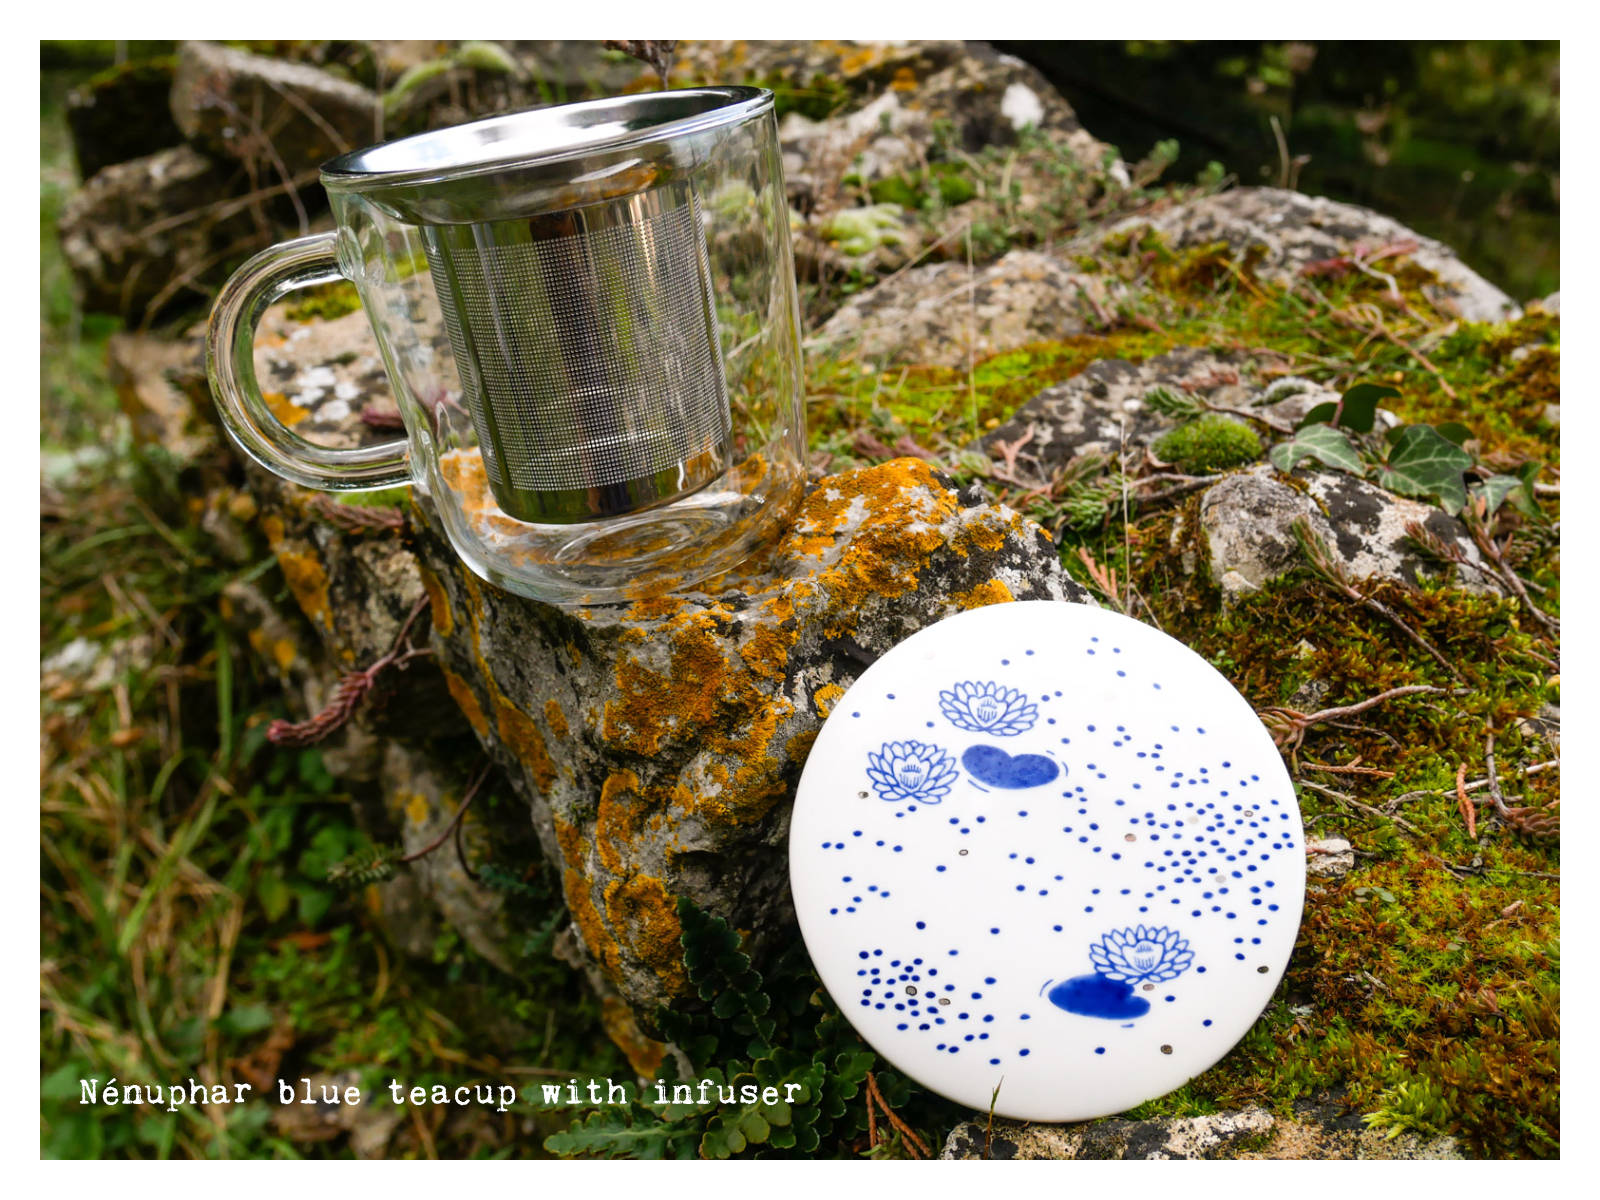 """Nénuphar"" blue teacup with infuser from ""Enchanteresse"", a collection of painted porcelains by messalyn."